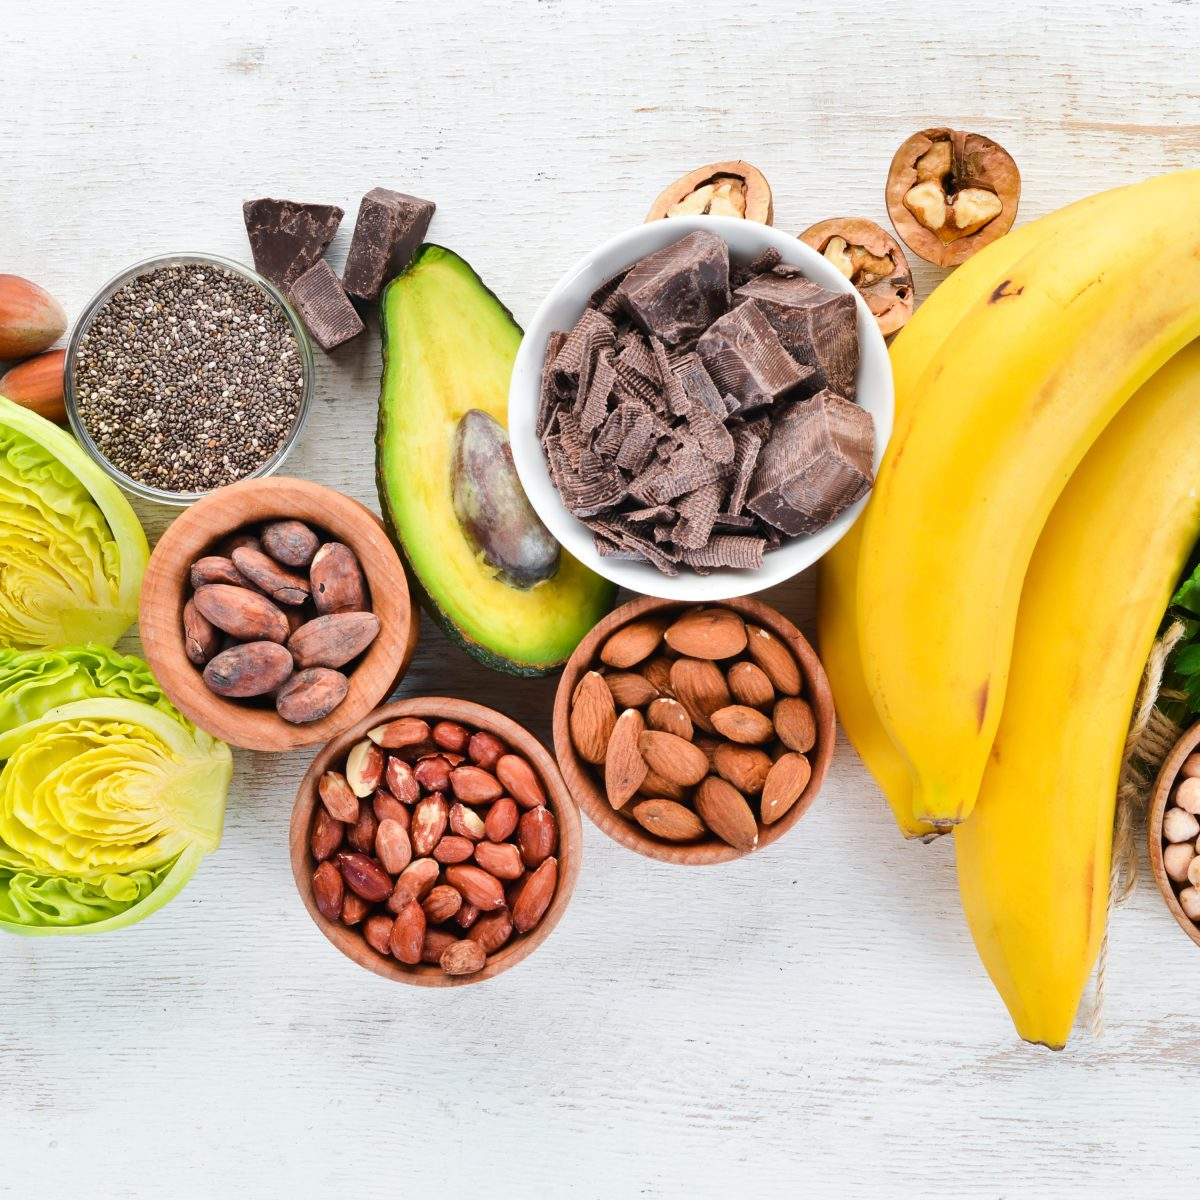 12 Foods Naturally High in Magnesium